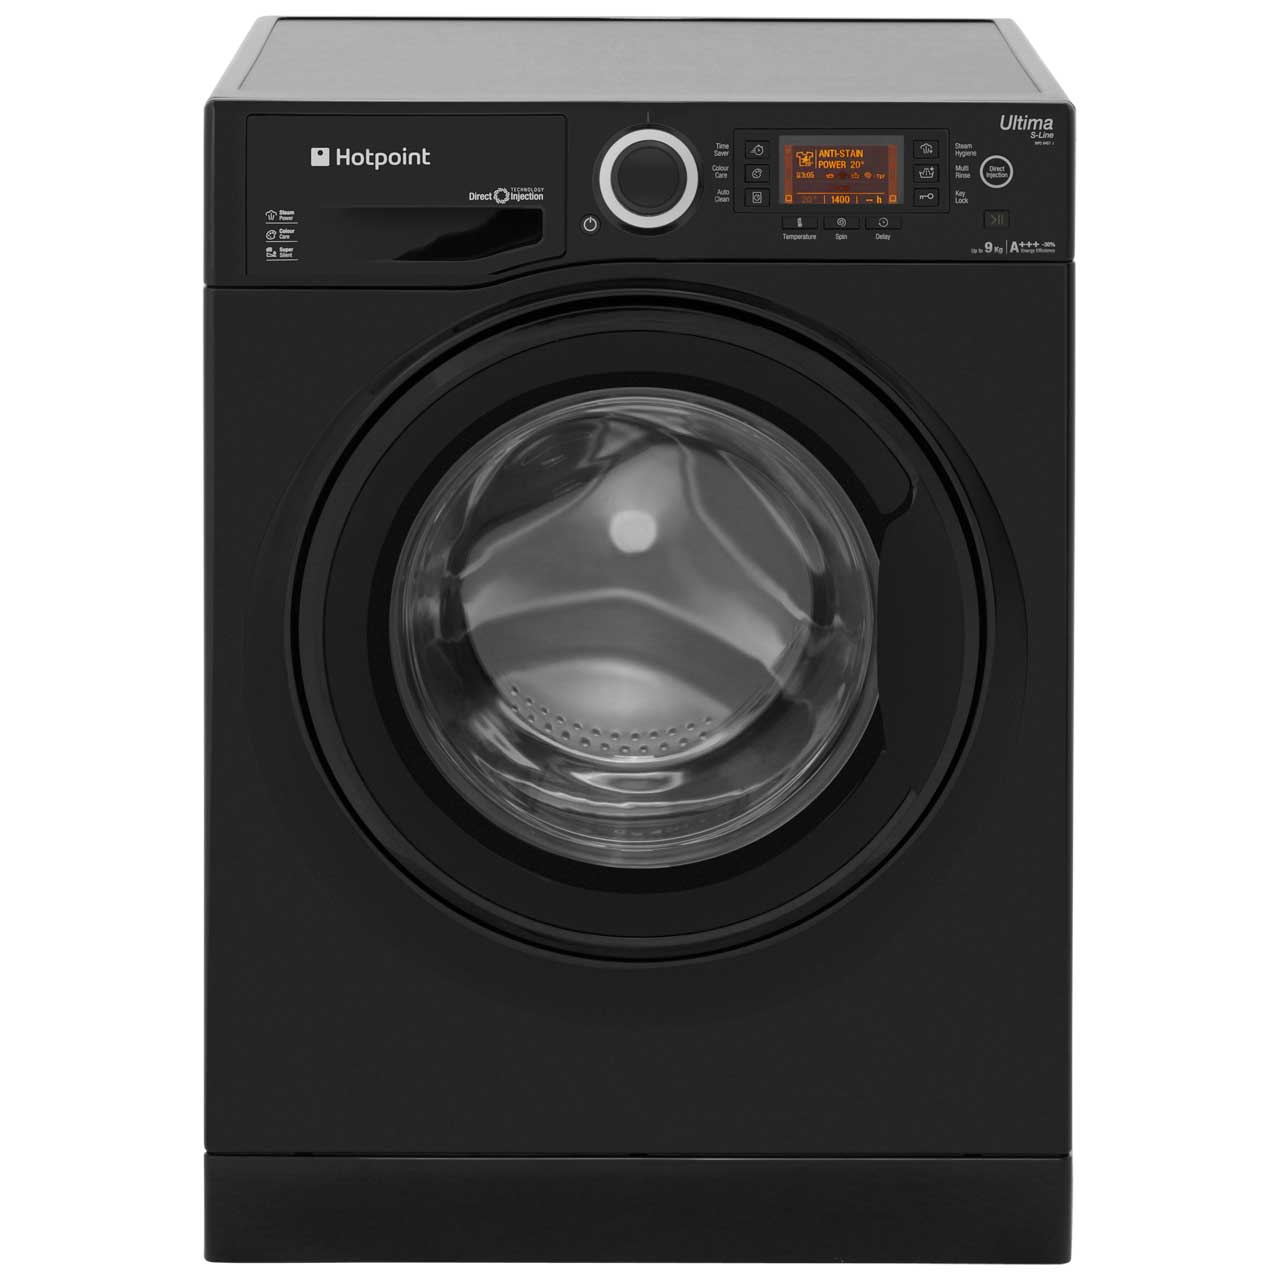 Hotpoint Ultima SLine RPD9467JKK Free Standing Washing Machine in Black